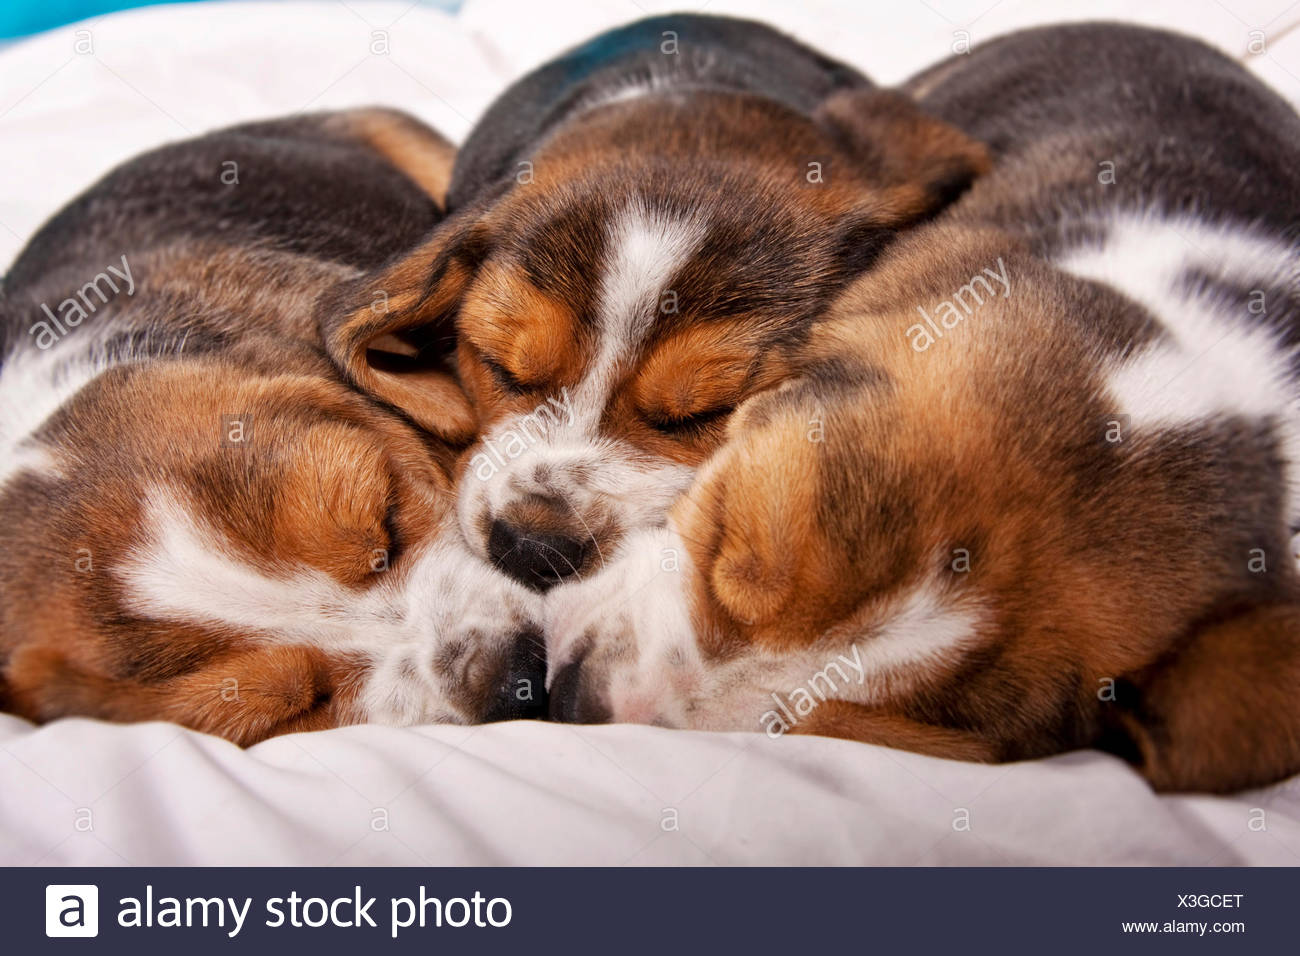 Three Beagle puppies sleeping nose to nose - Stock Image